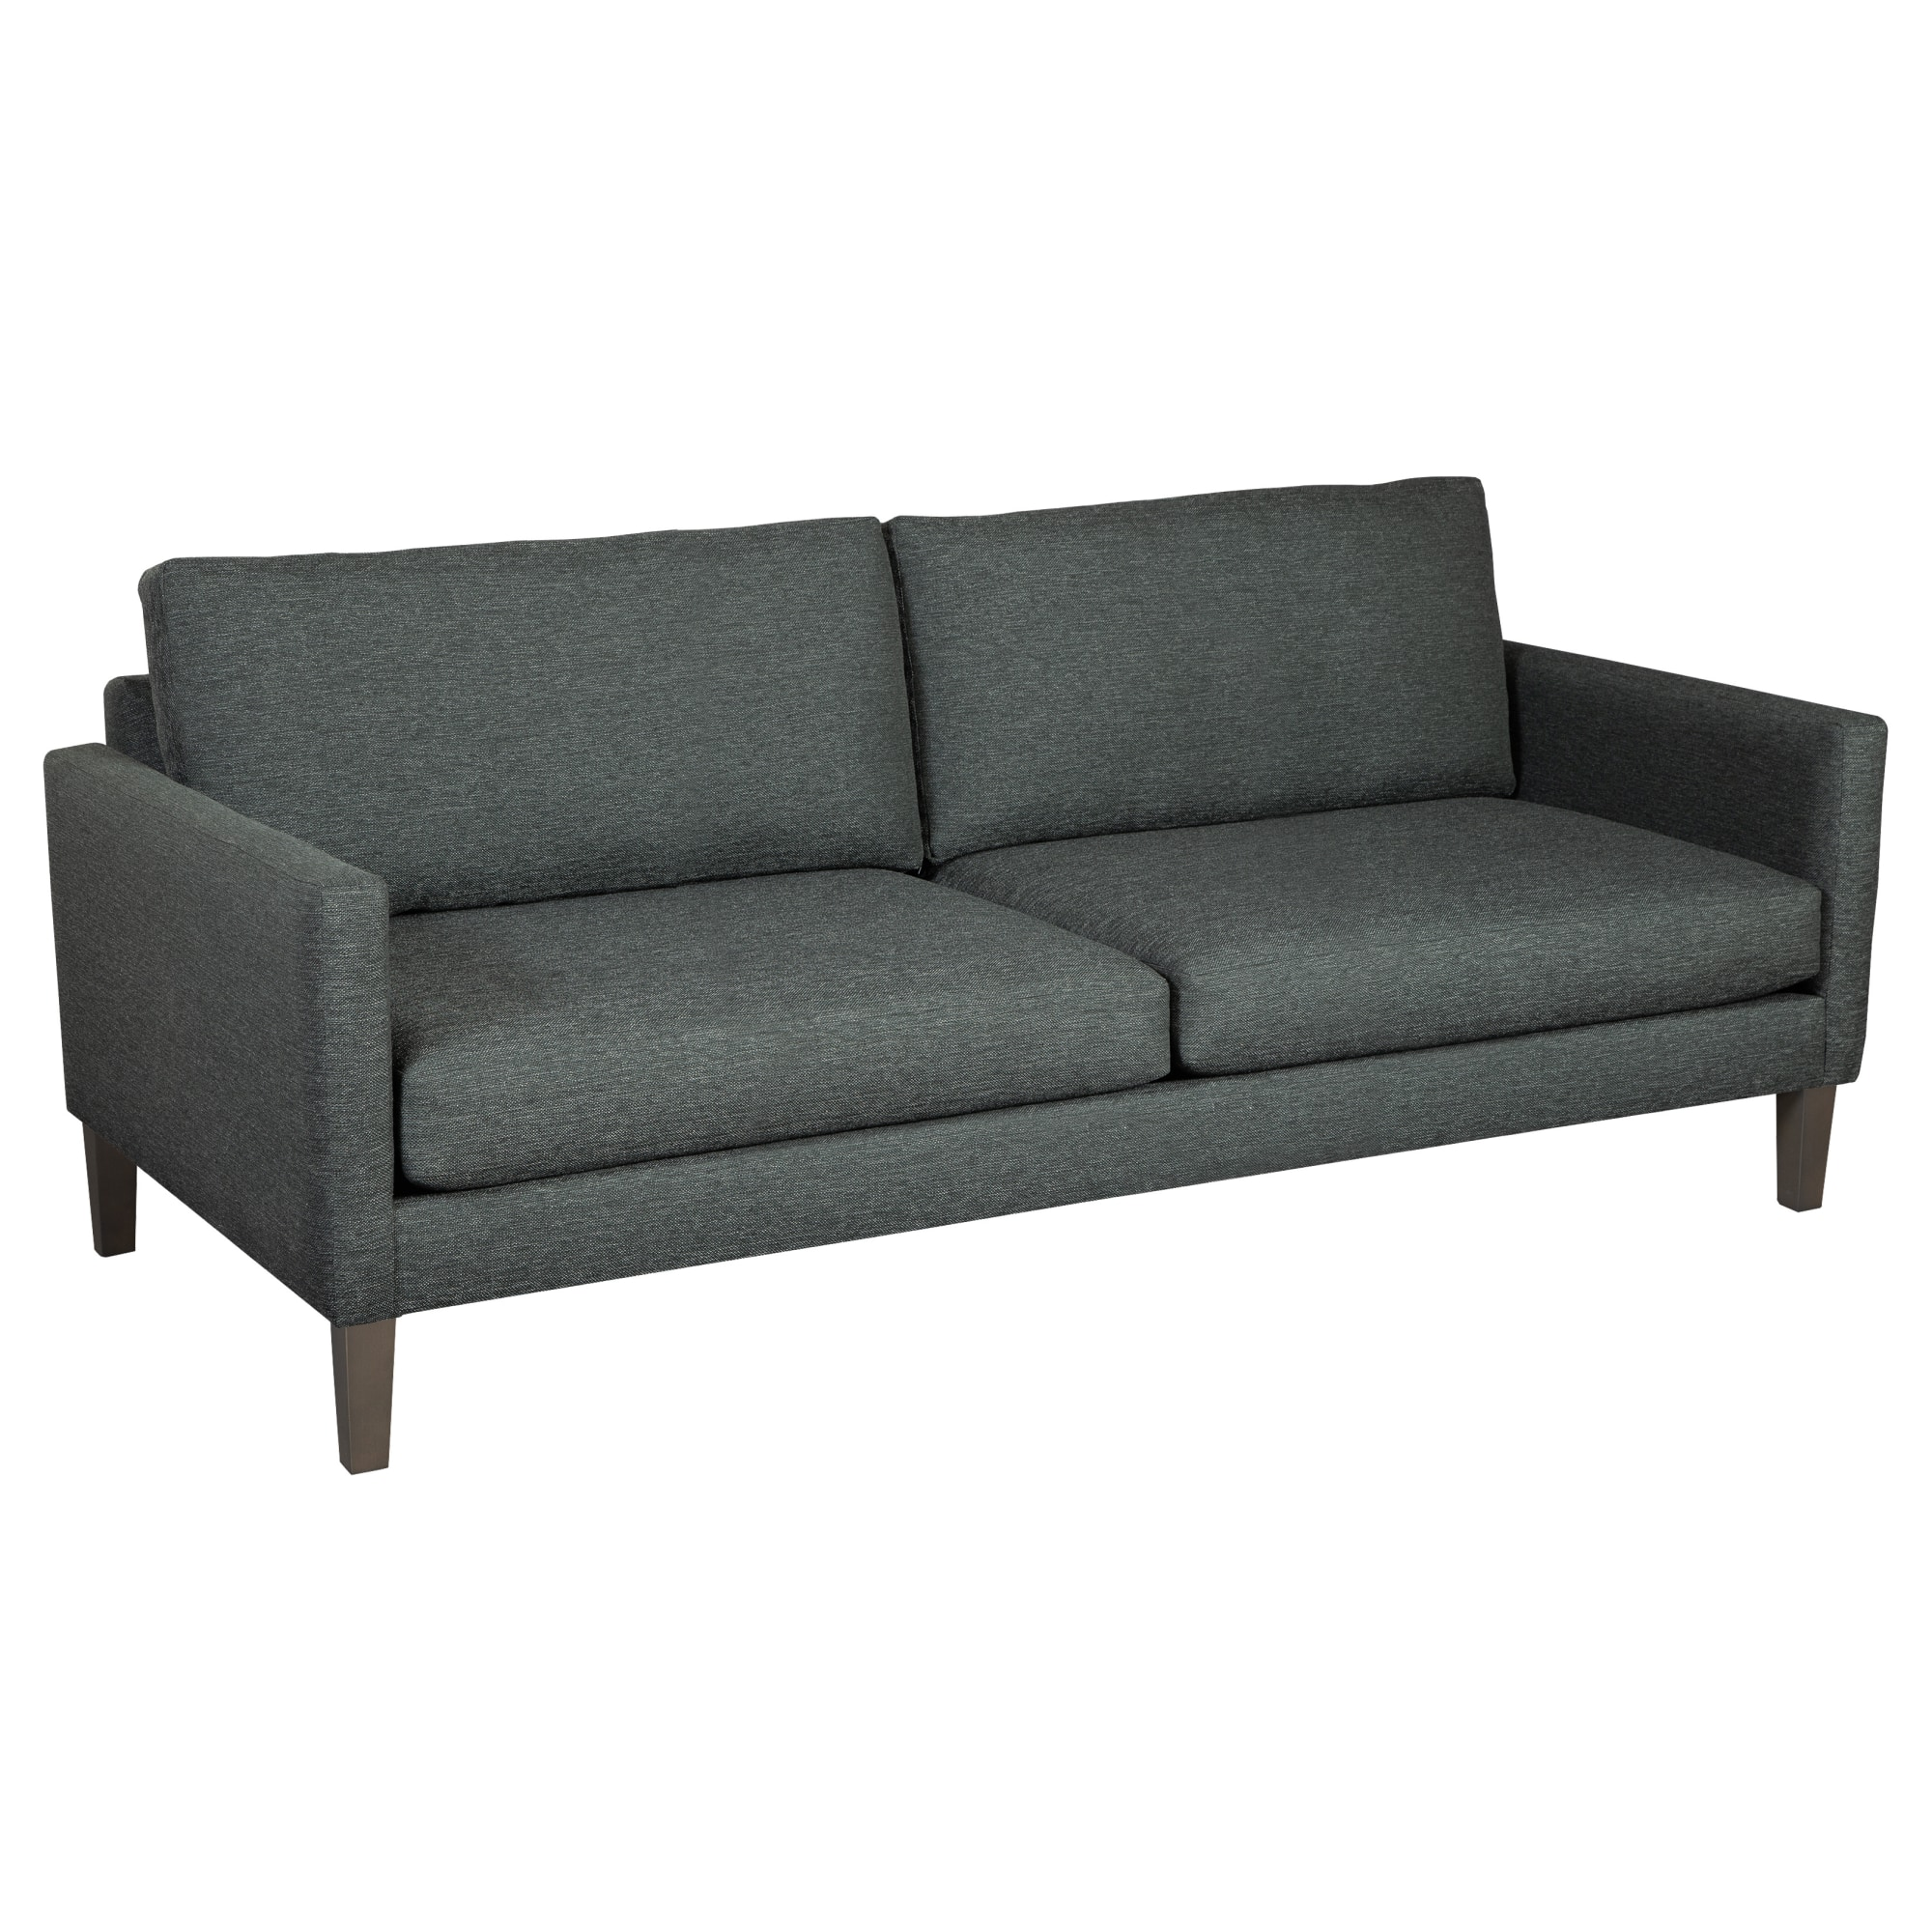 "Image for 174175 Metro 75"" Track Arm Sofa from Hekman Official Website"